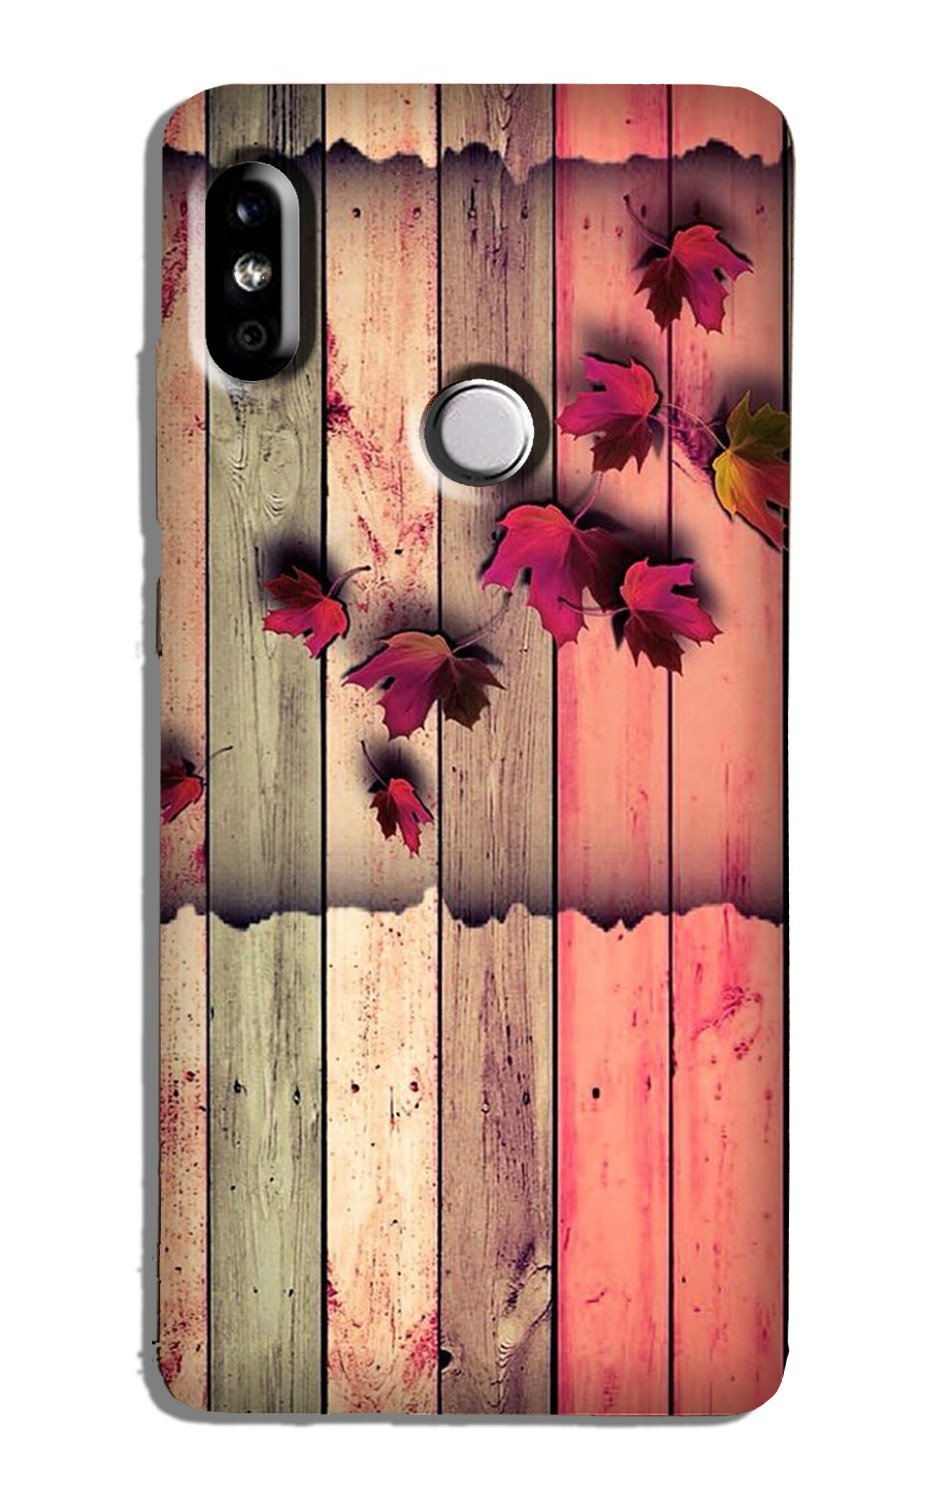 Wooden look2 Case for Xiaomi Redmi Y3